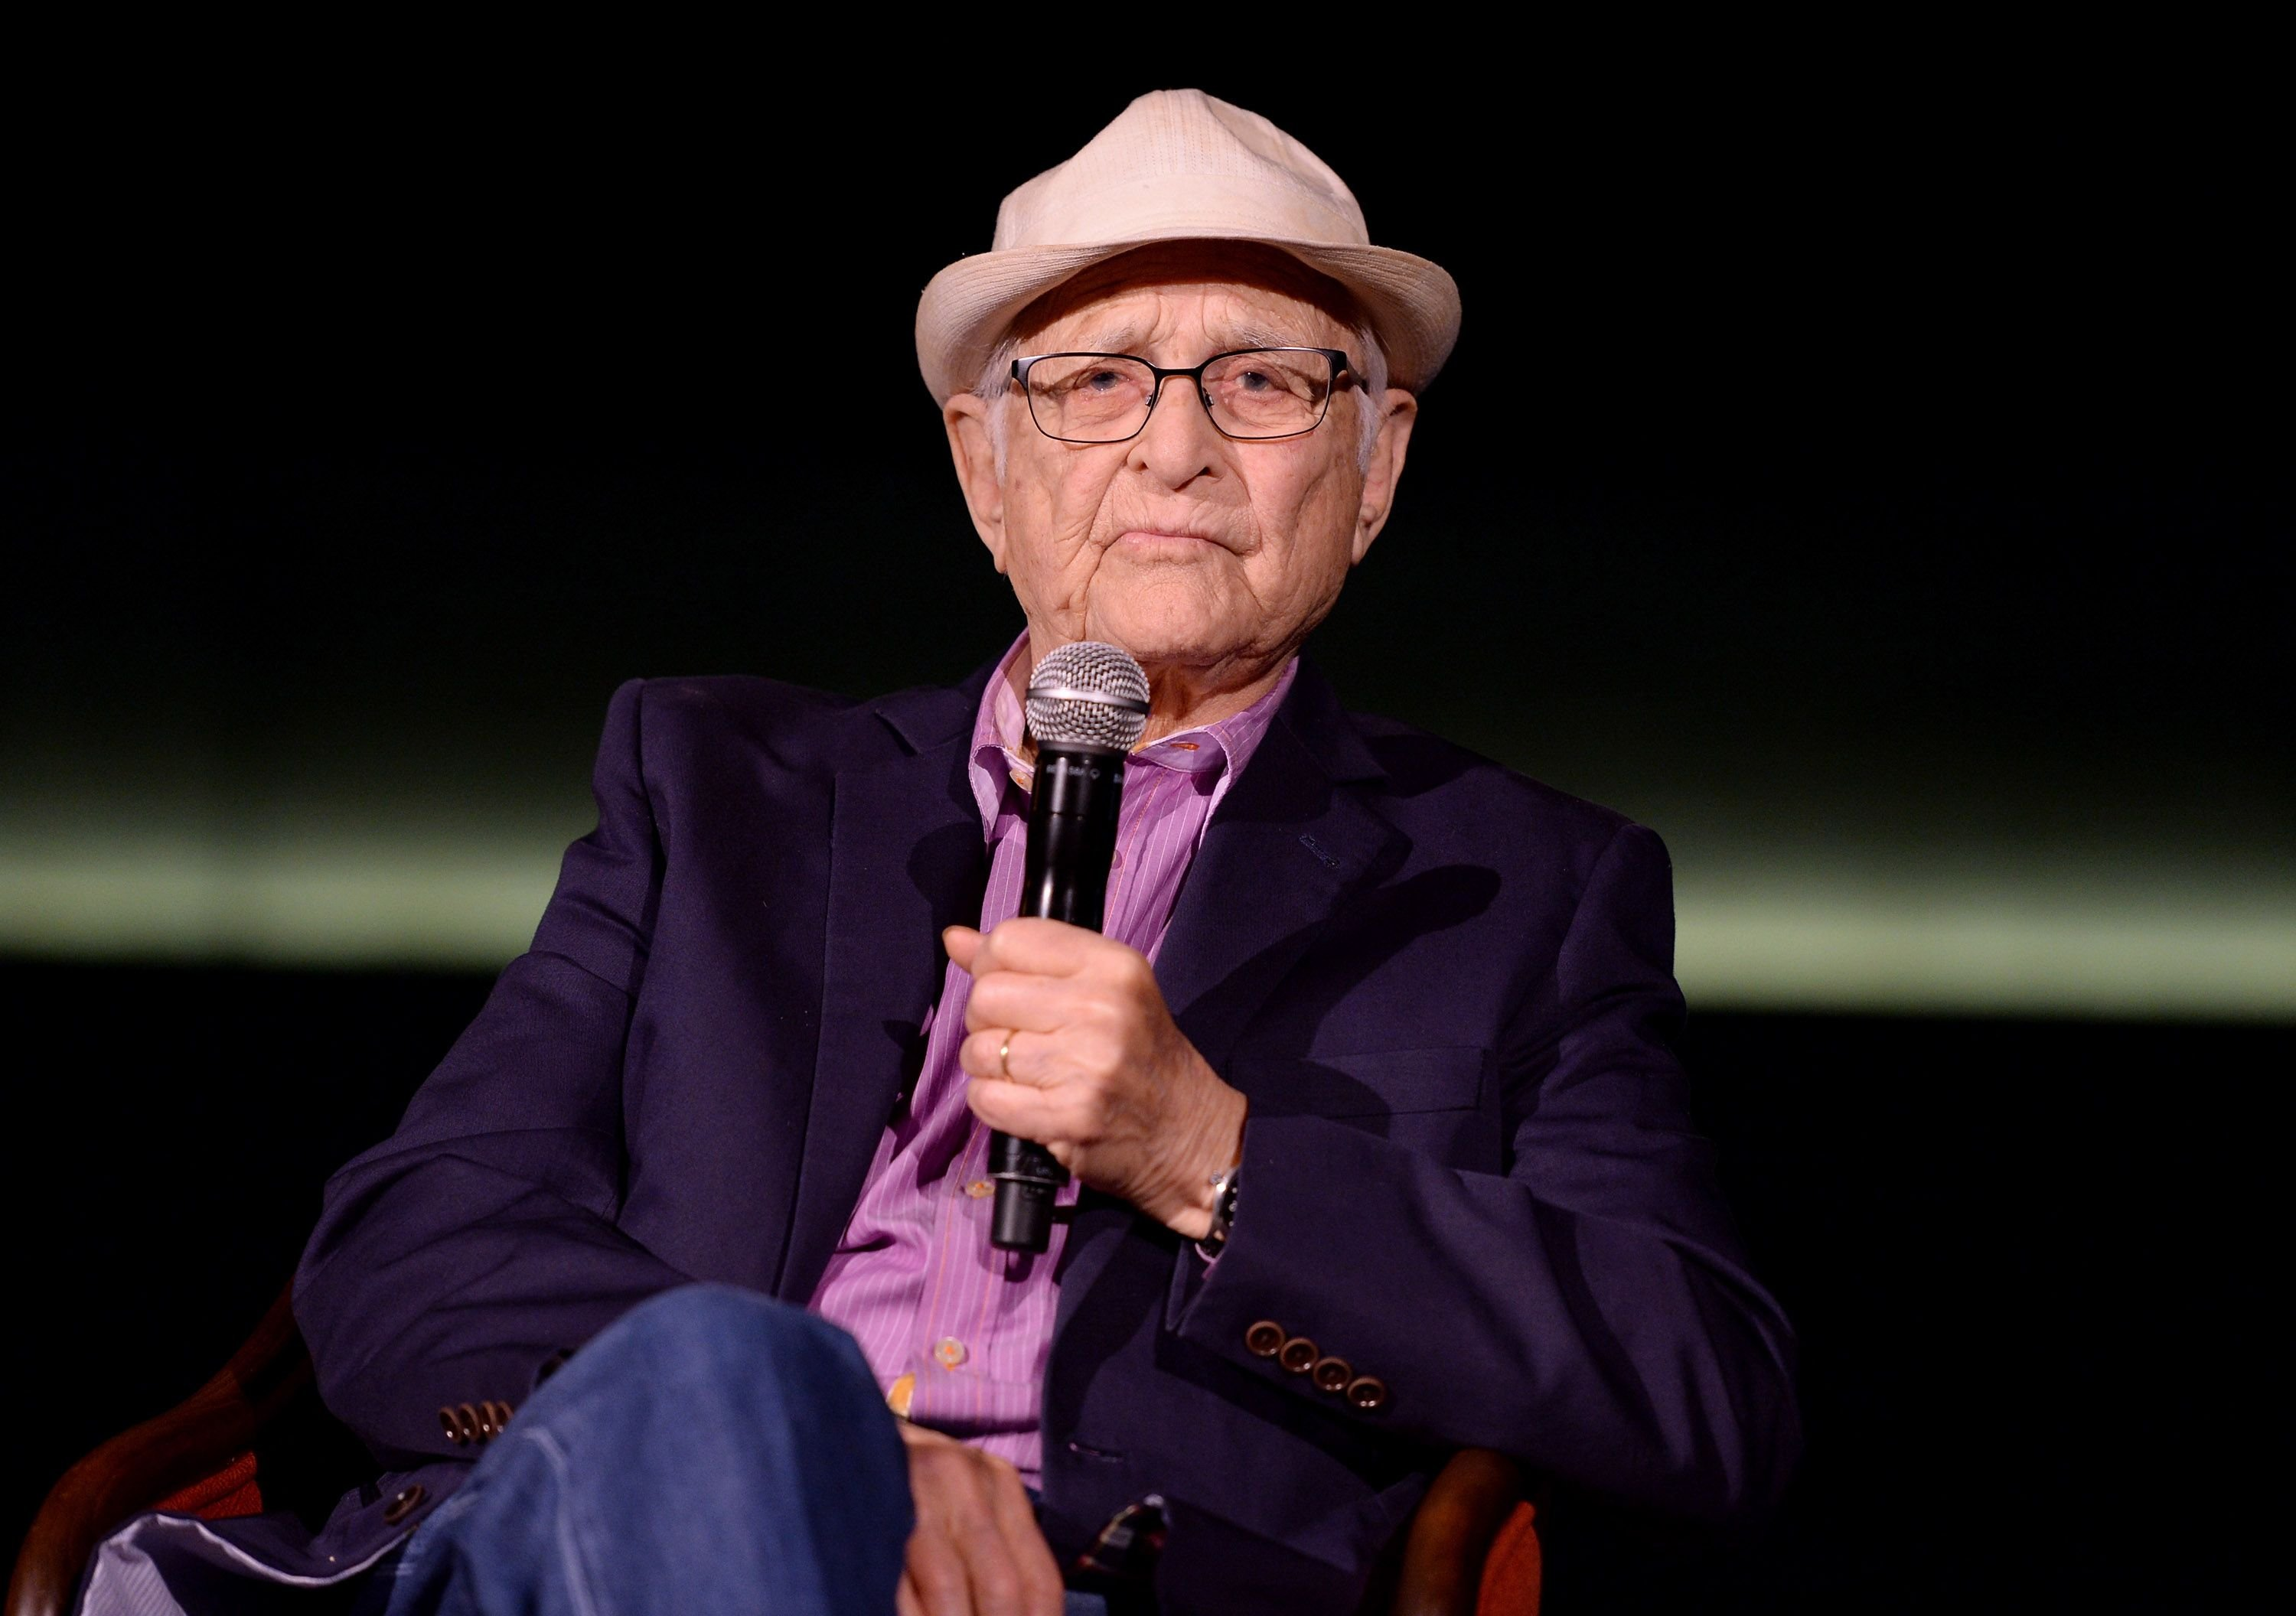 Norman Lear in 2016 in Santa Monica, California | Source: Getty Images